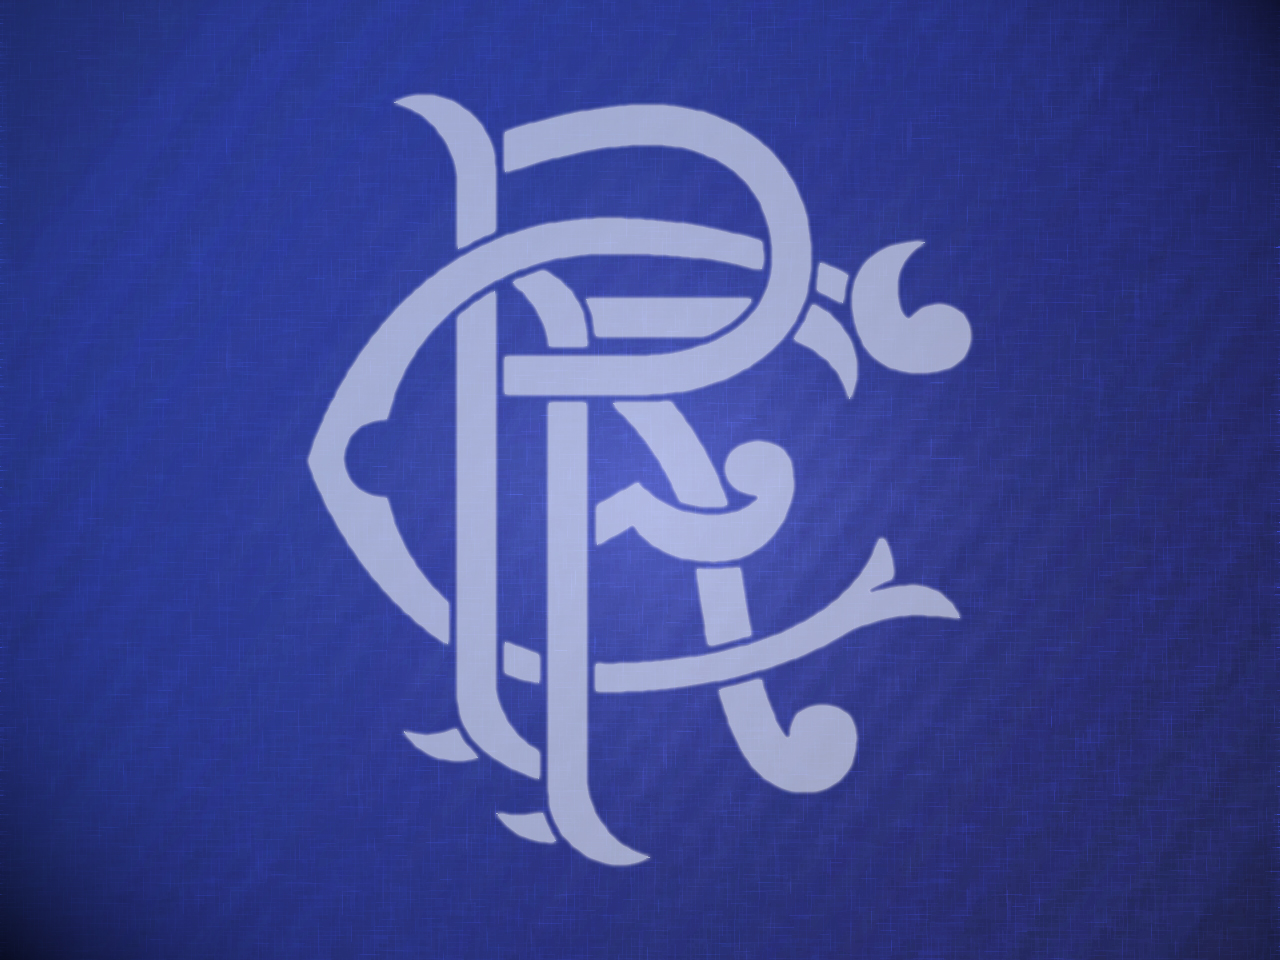 Fc Glasgow rangers wallpaper wallpaper Football Pictures and Photos 1280x960